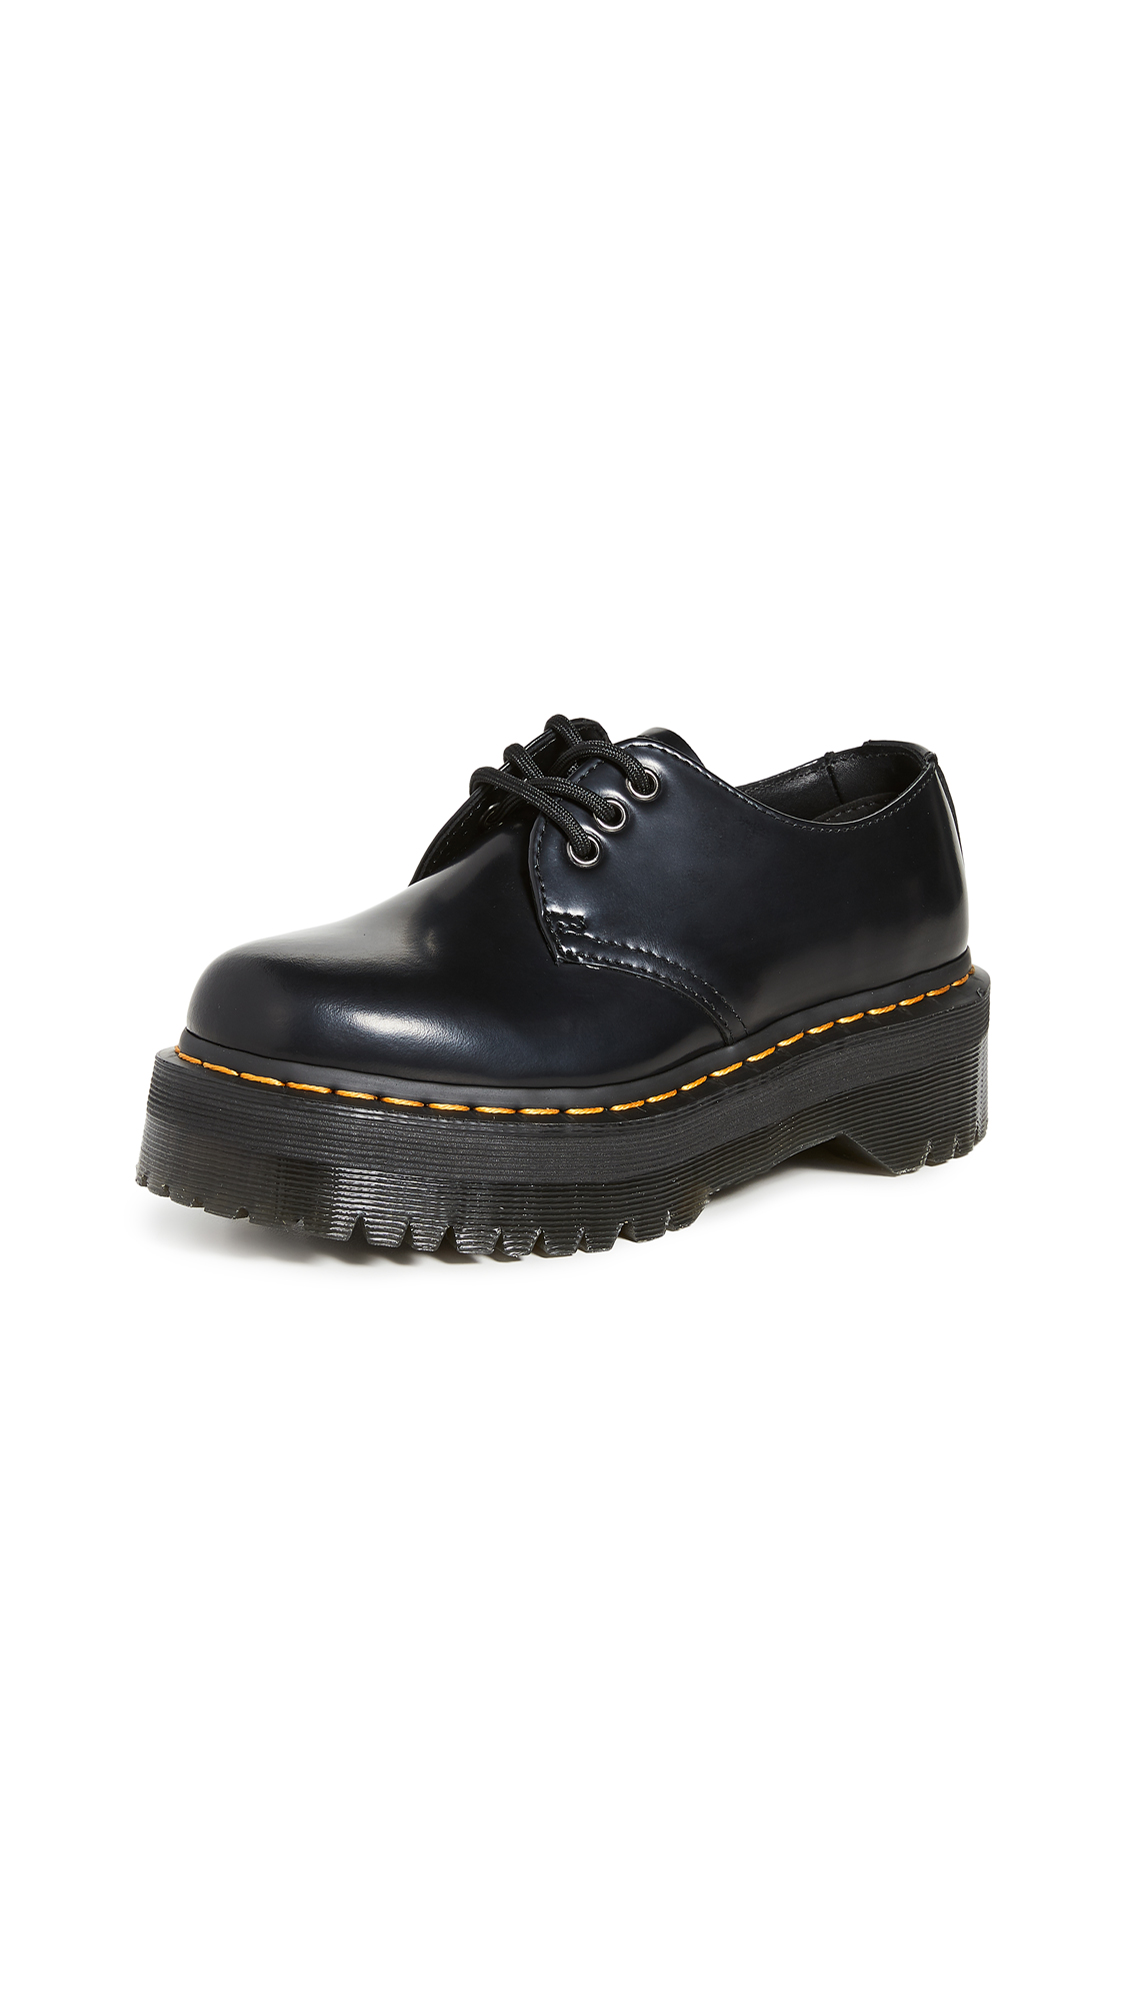 Buy Dr. Martens 1461 Quad Lace Up Shoes online, shop Dr. Martens